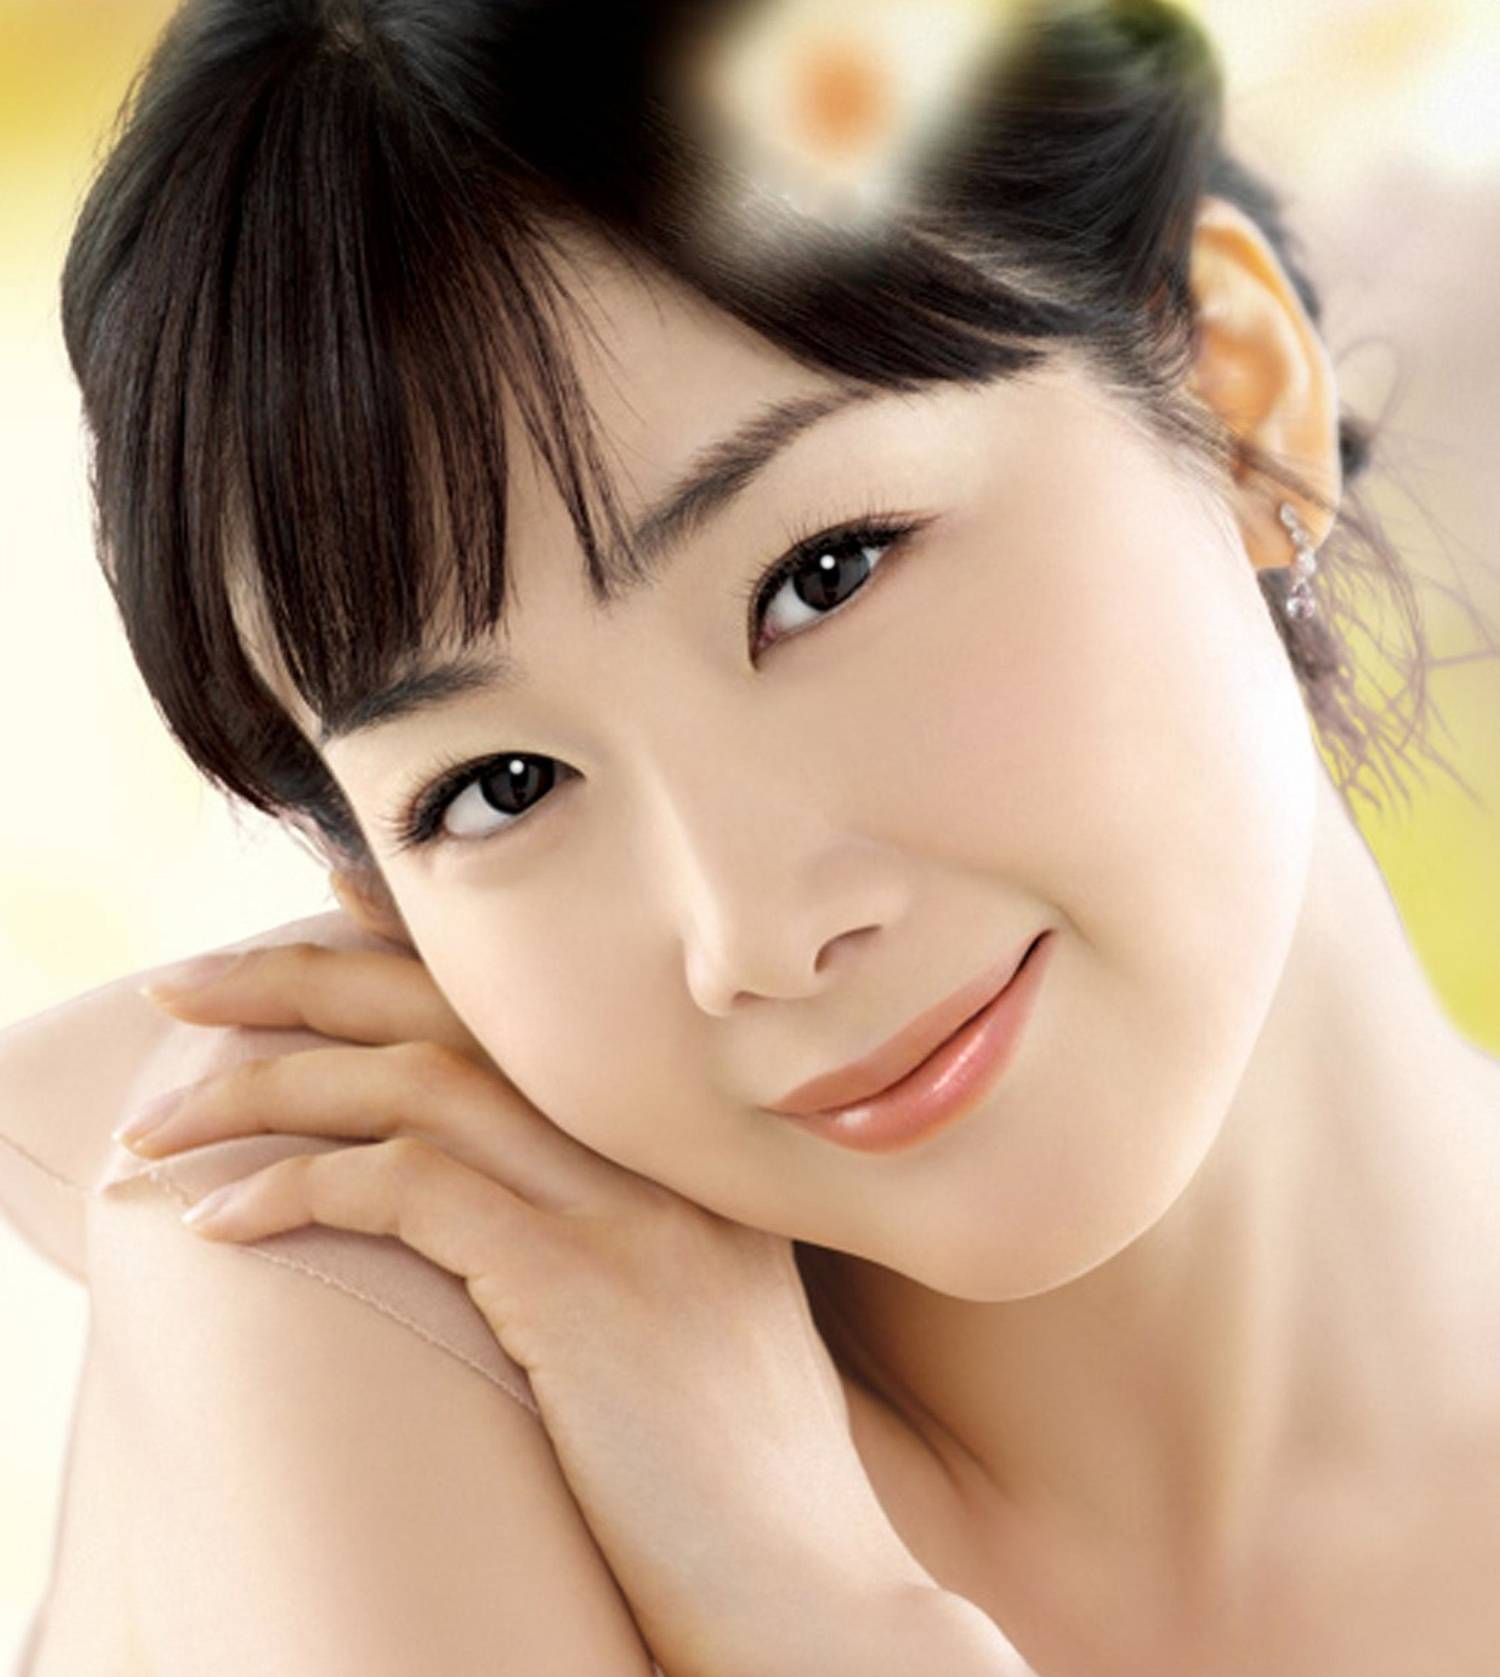 [Photos] Added more pictures for the Korean actress Choi